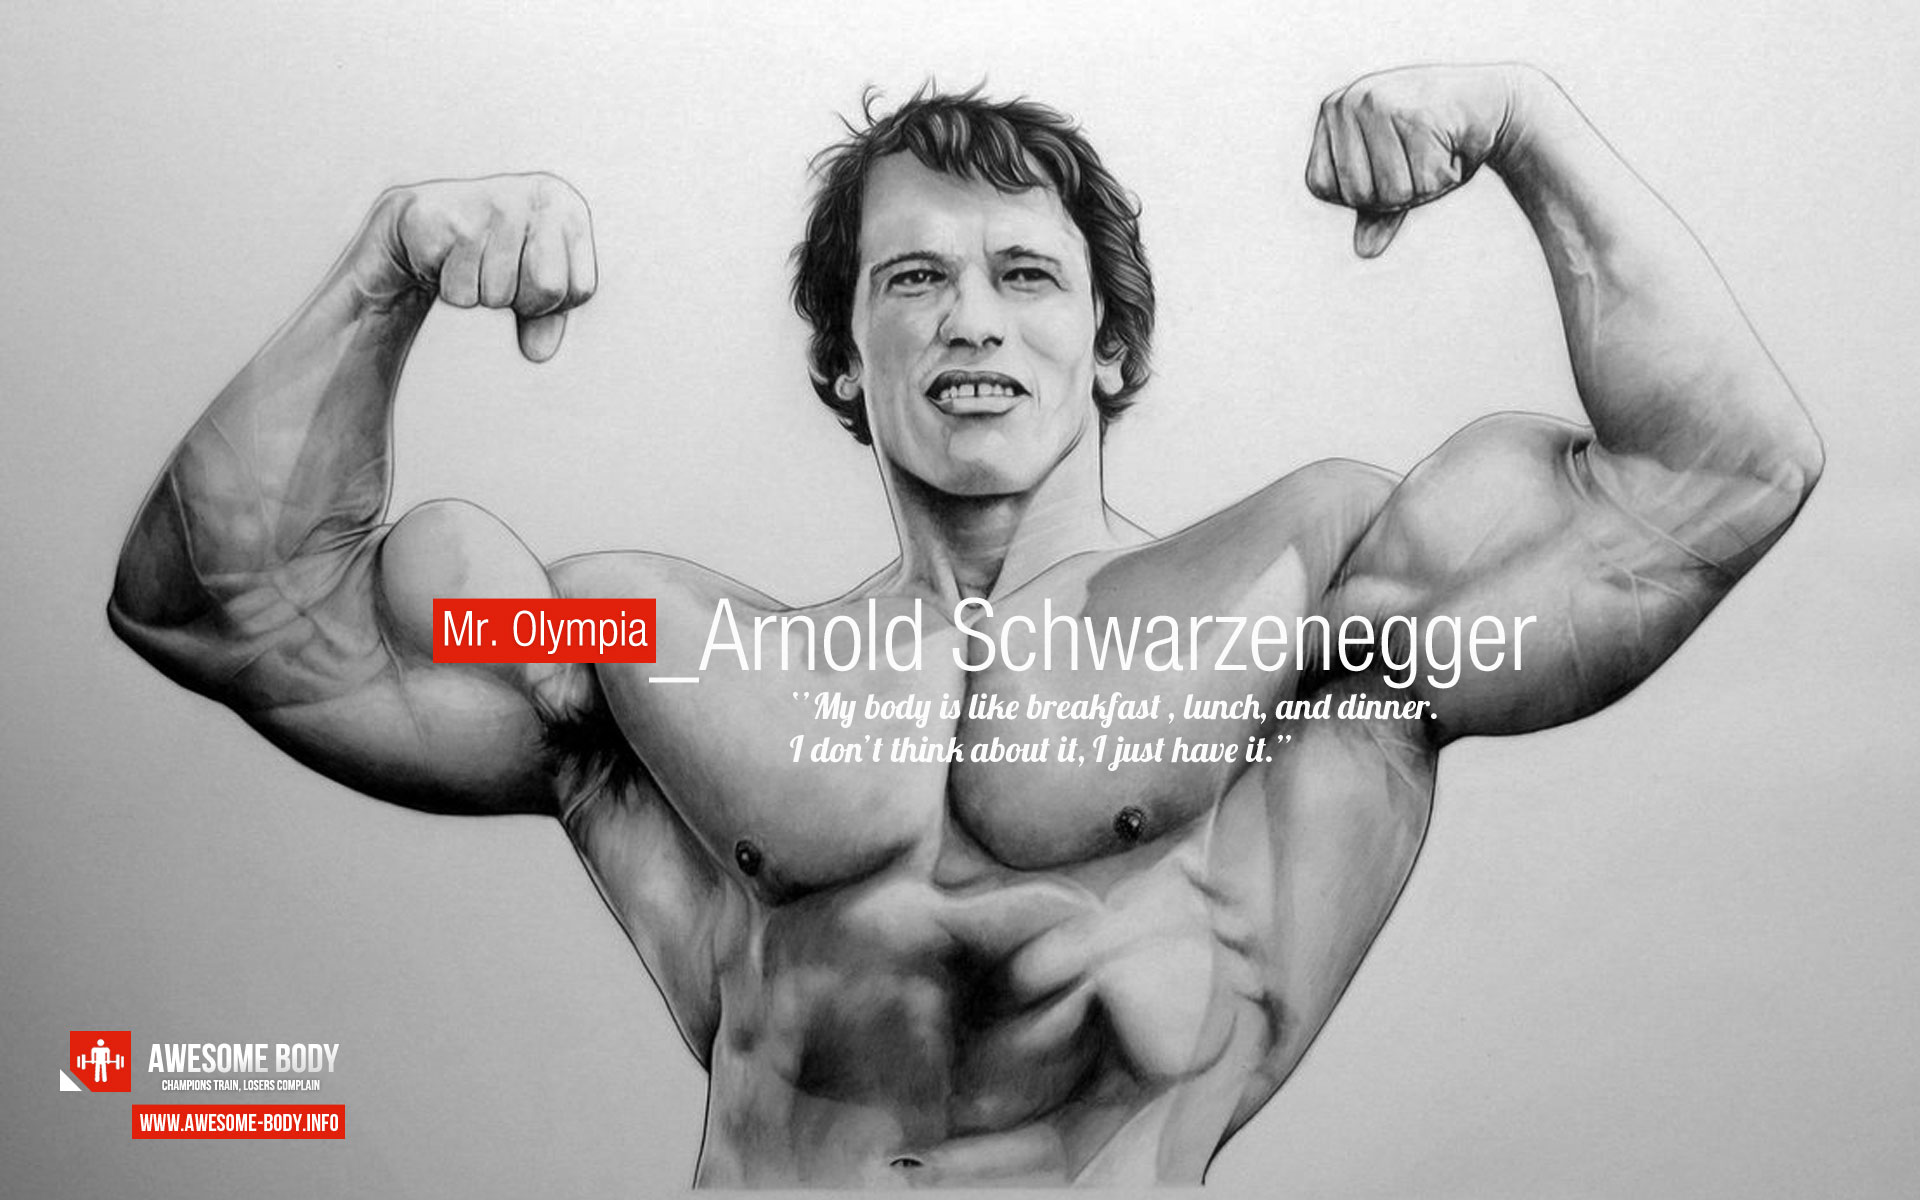 Arnold Schwarzenegger Motivational Poster Awesome Body 1920x1200